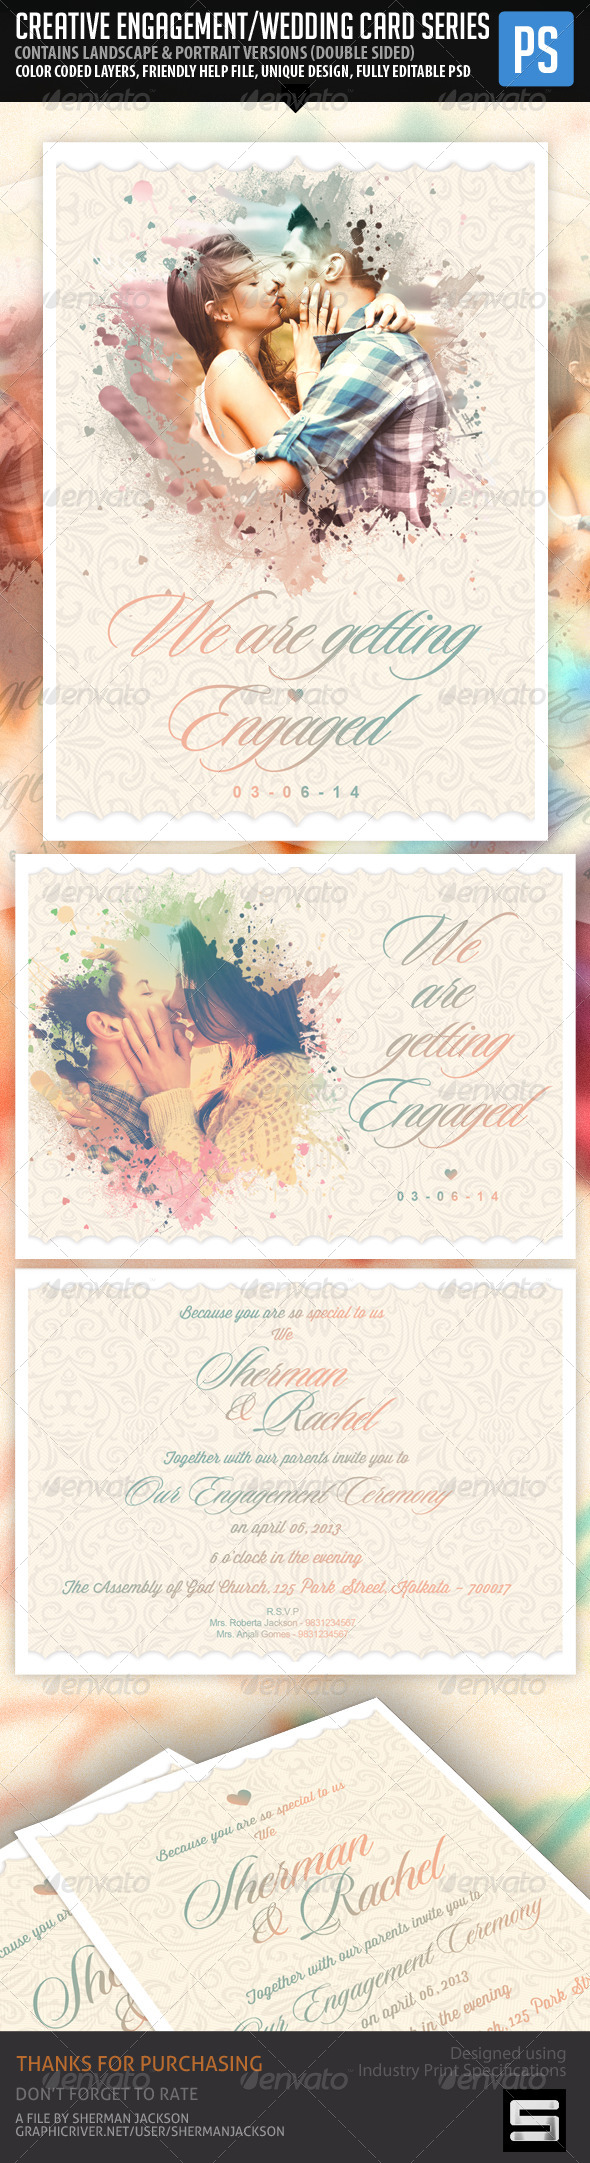 GraphicRiver Creative Engagement Wedding Card 7547950